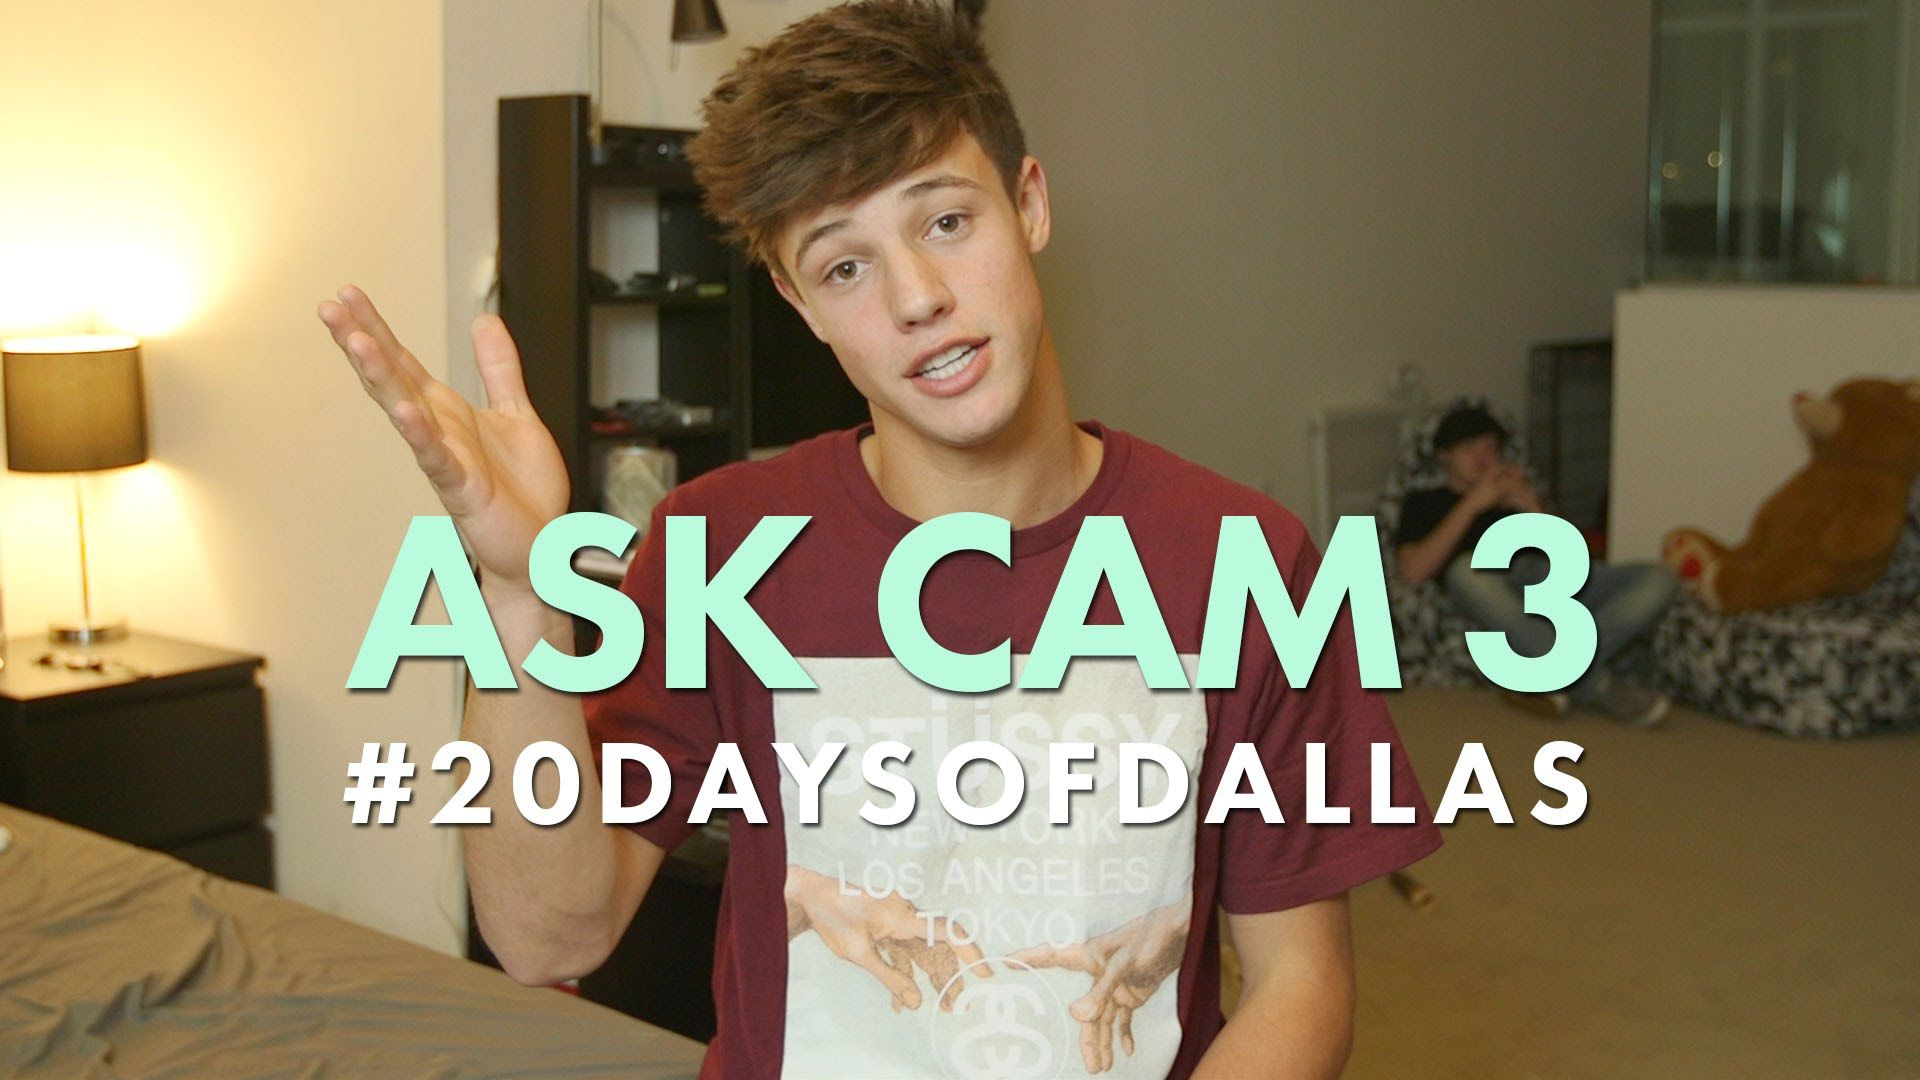 ask cam 3 #20daysofdallas omg yes i have been waiting all day for it